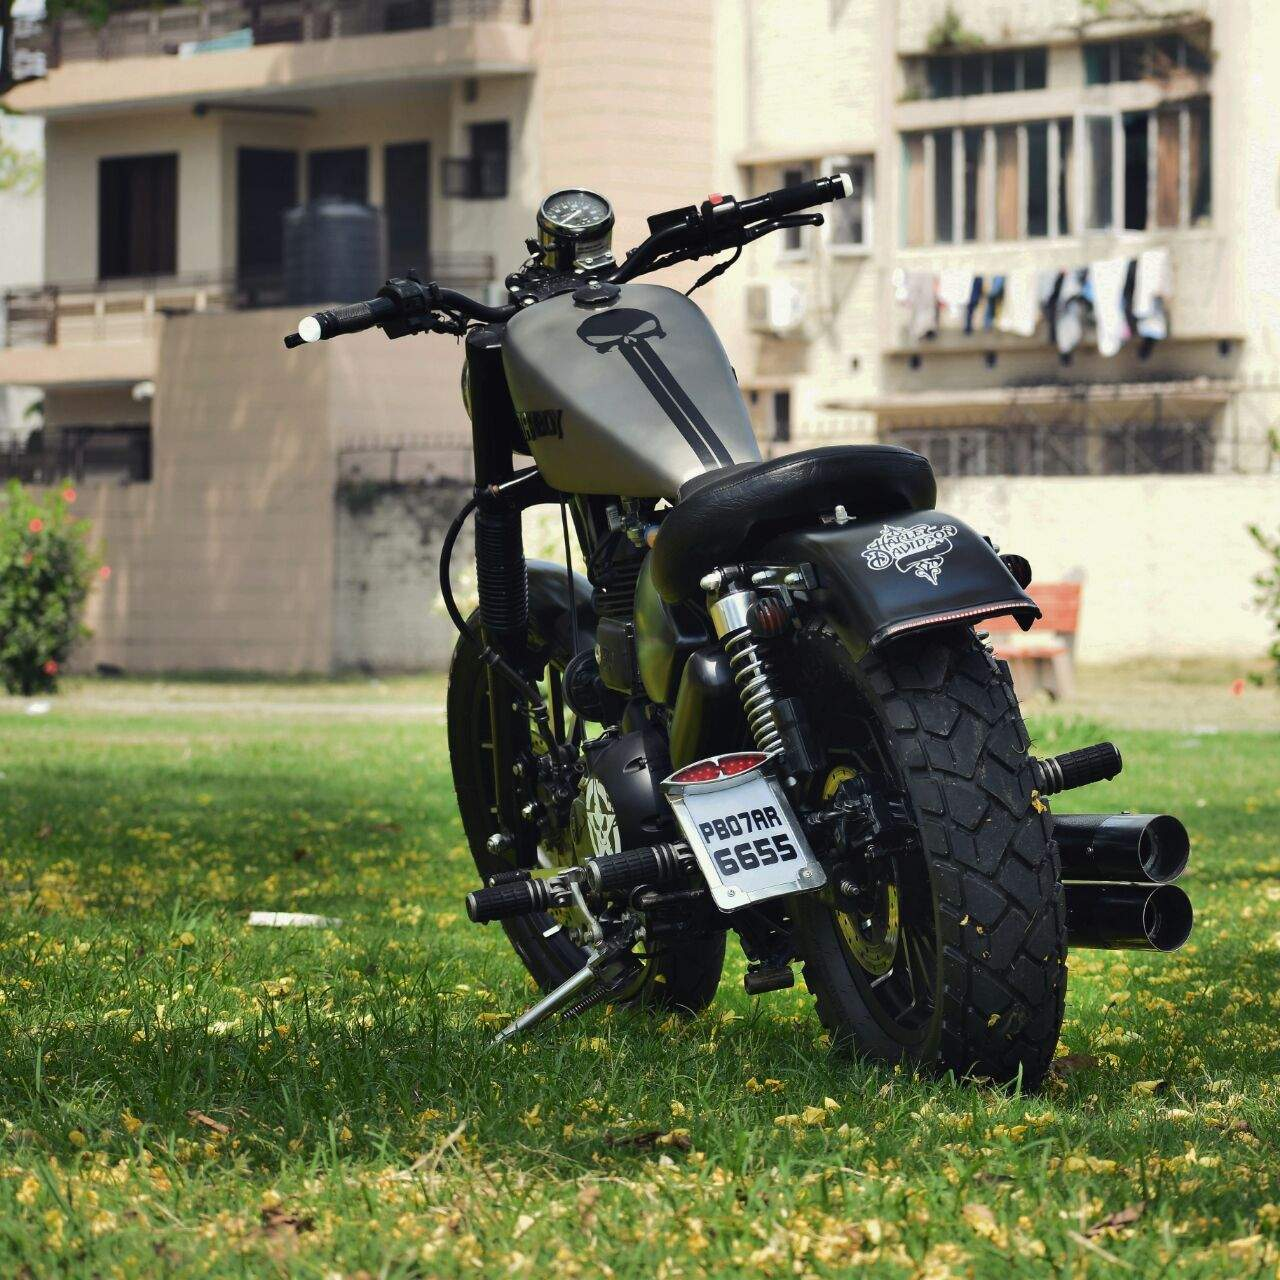 Top Motorcycle Customization Services in Chandigarh - Best